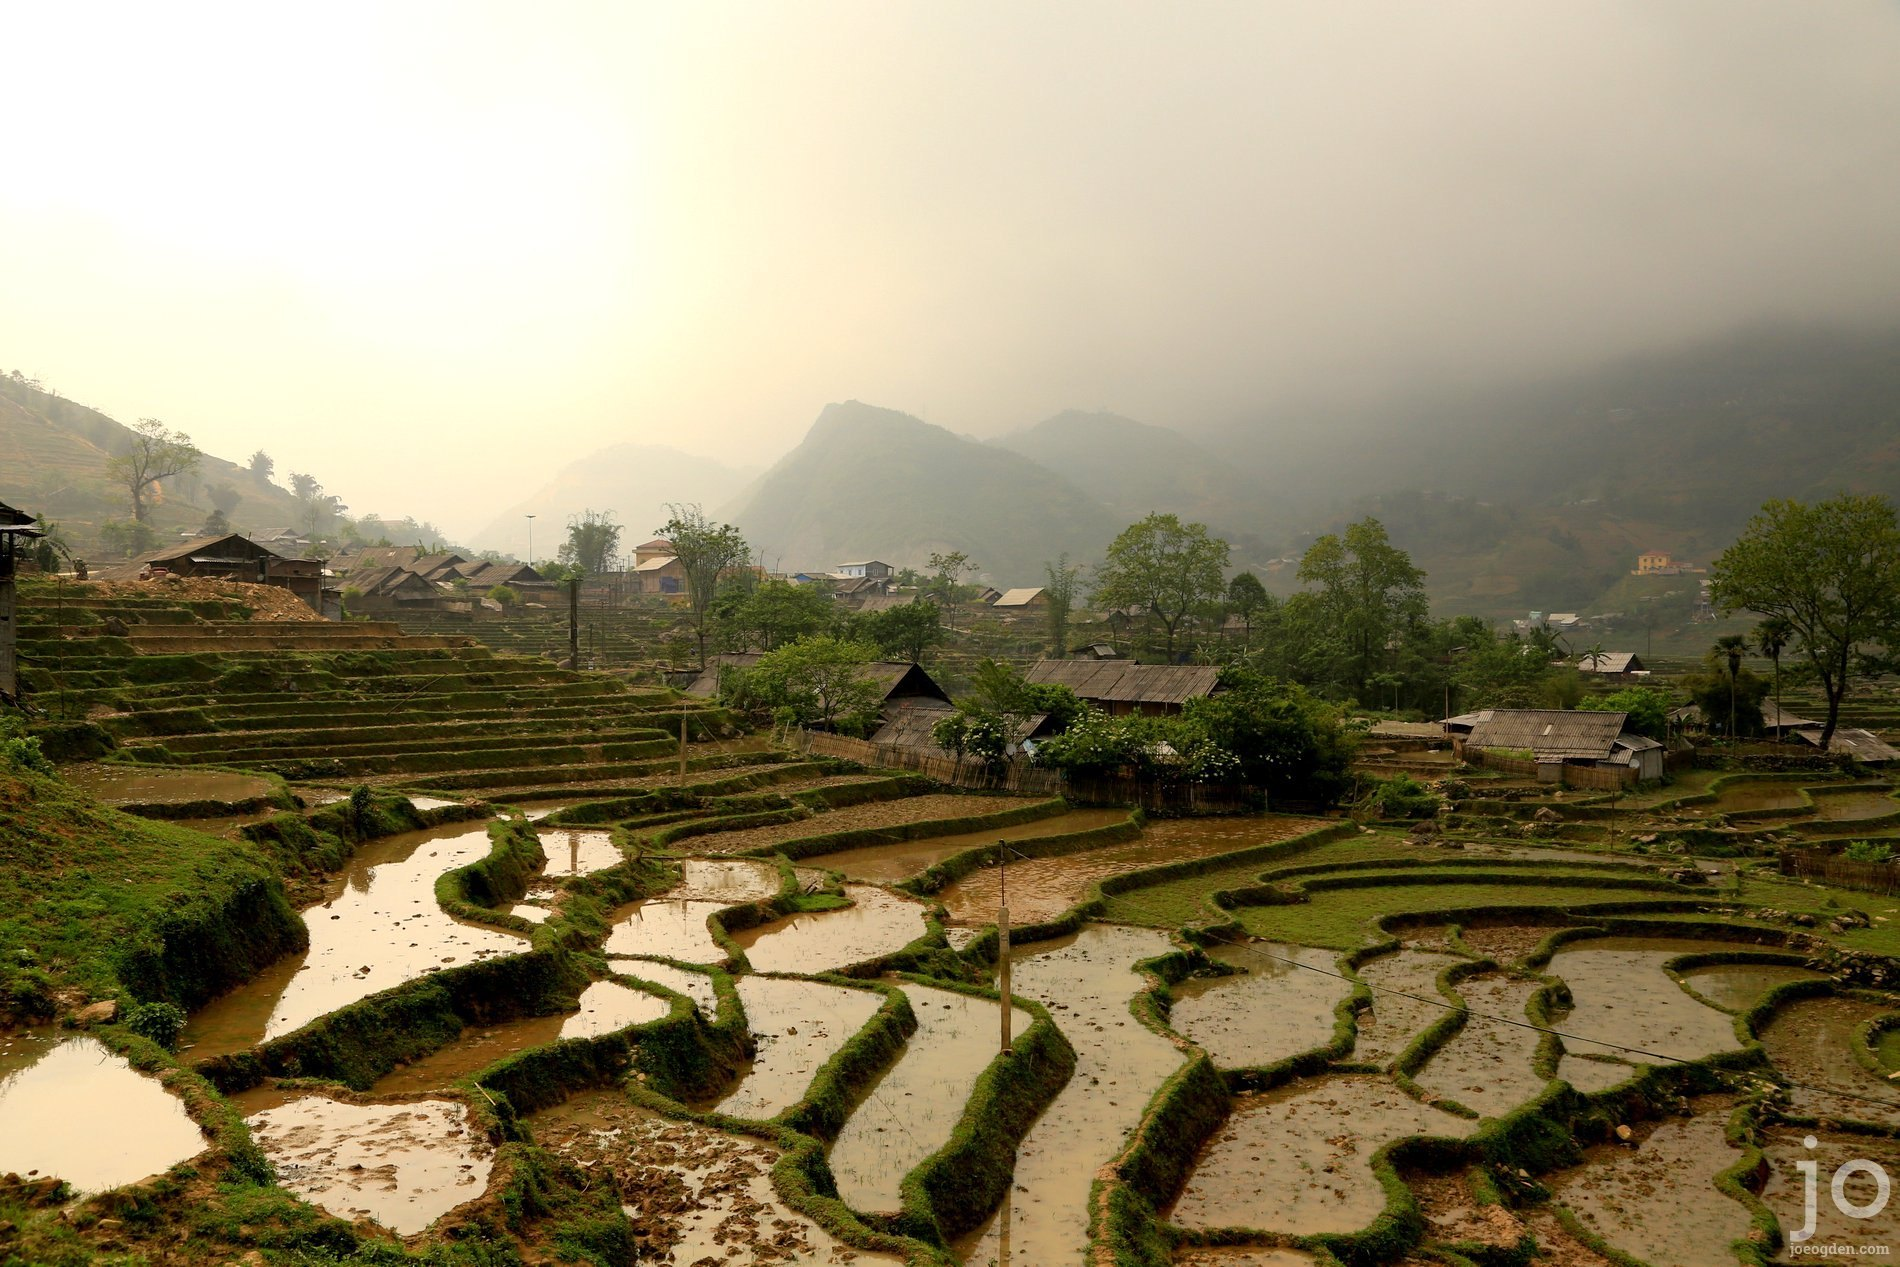 Rice terraces in Sapa, Vietnam